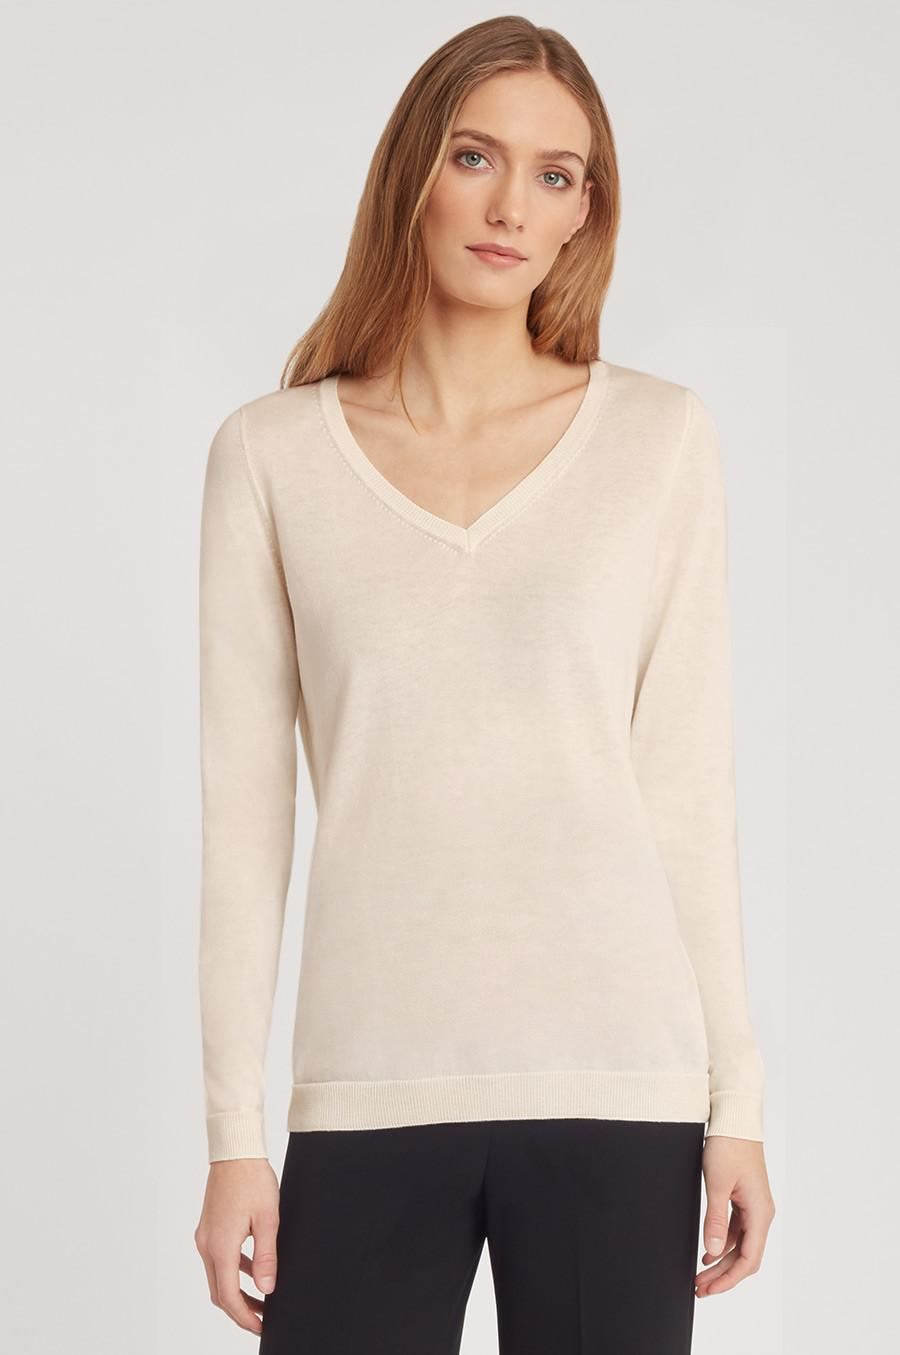 Women's Classic Cotton Cashmere V-Neck Sweater in Sand | Size: 1